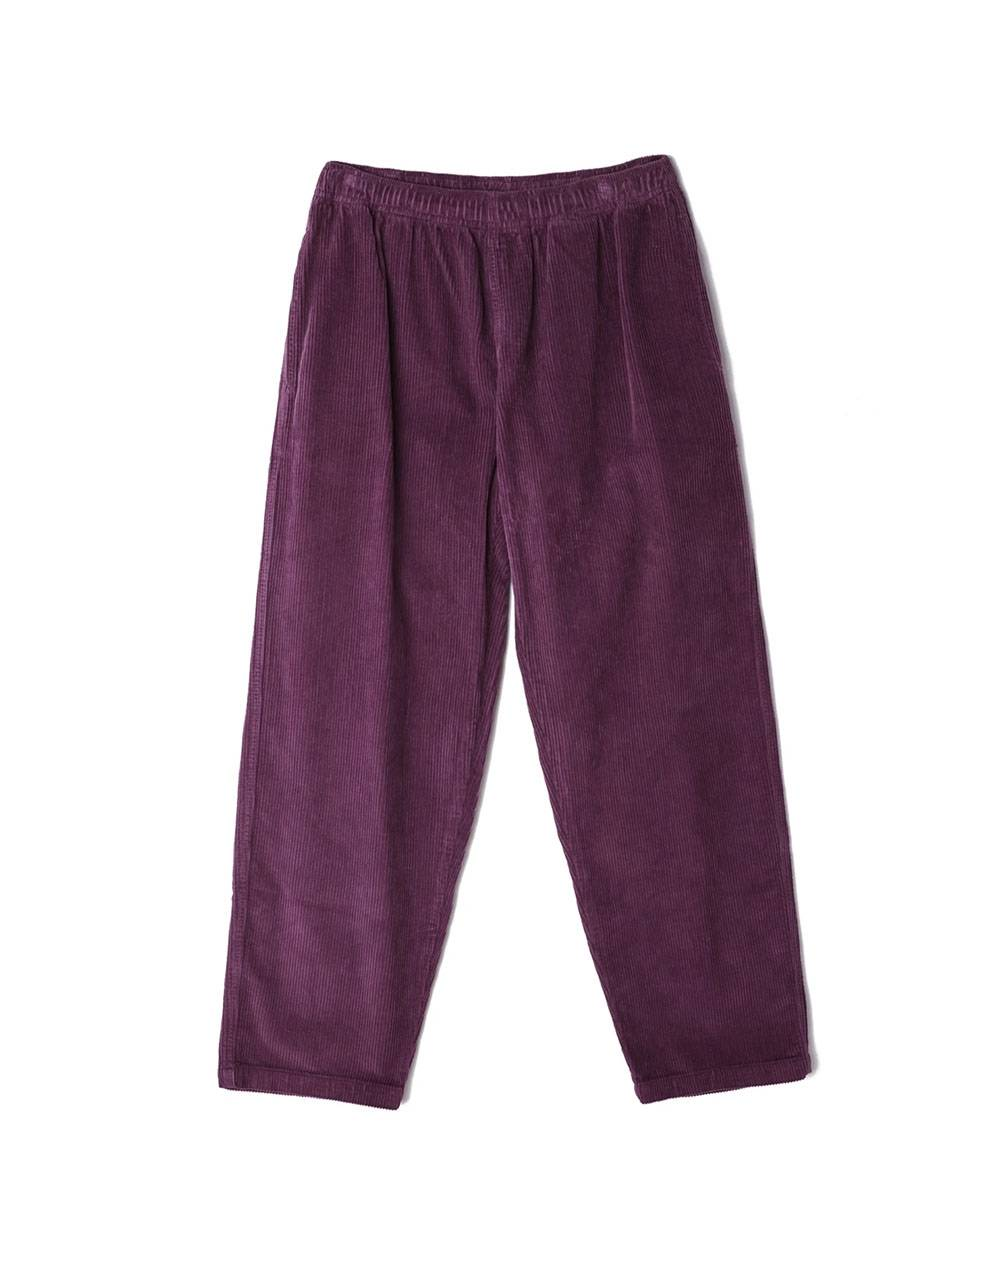 Obey easy od cord pants - blackberry wine obey Pant 81,15€